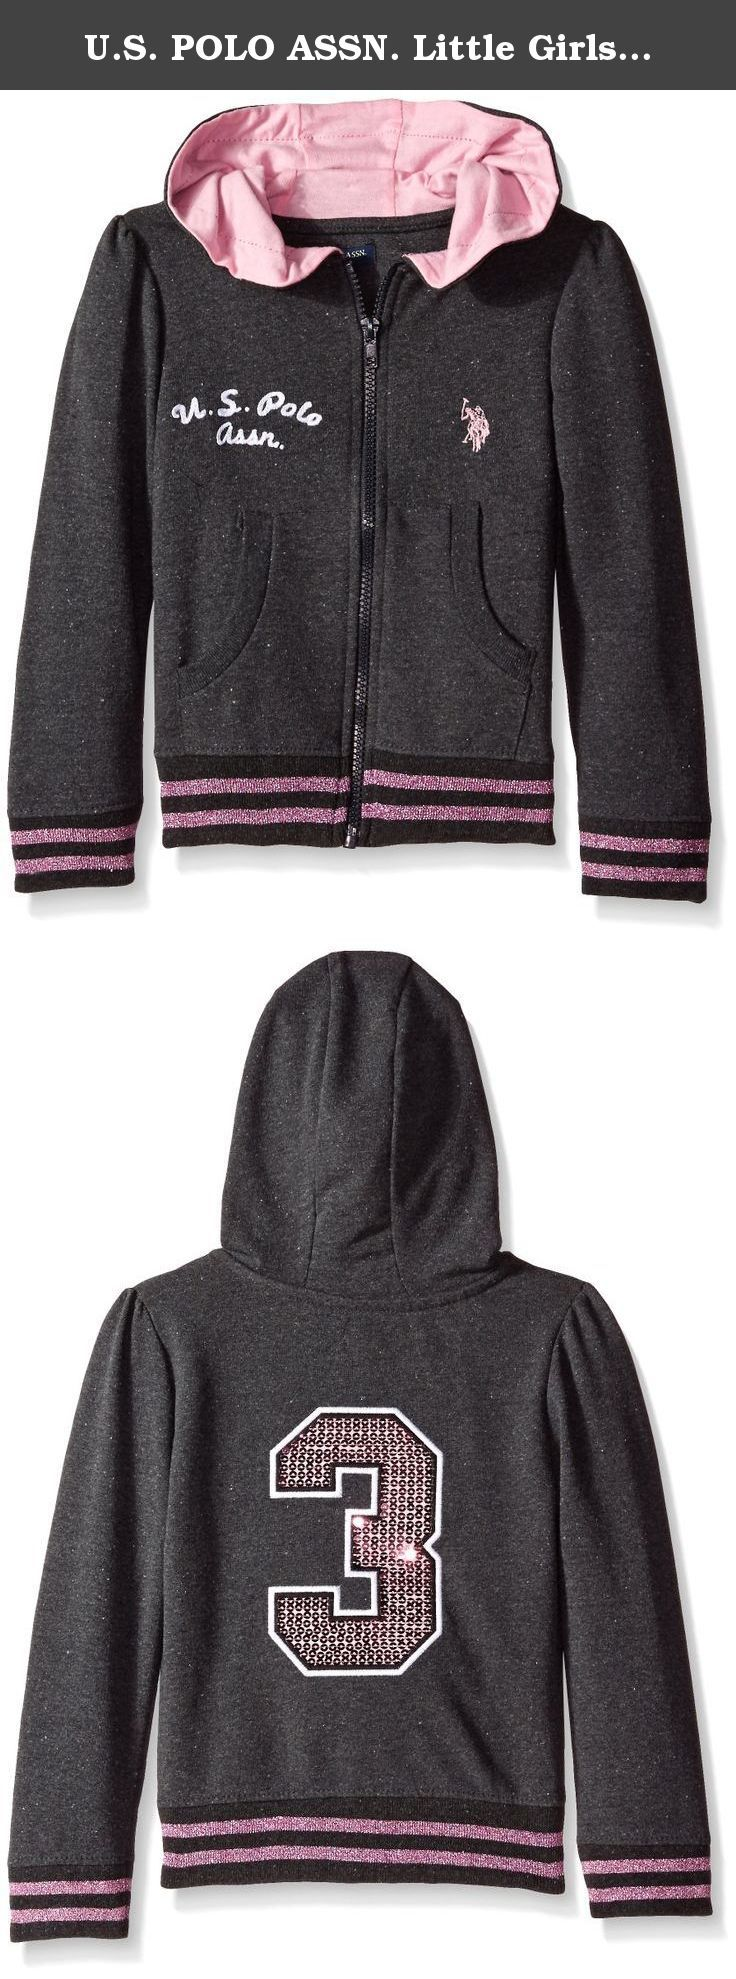 U.S Polo Assn Girls Lurex and Sequined Trimmed French Terry Hoodie